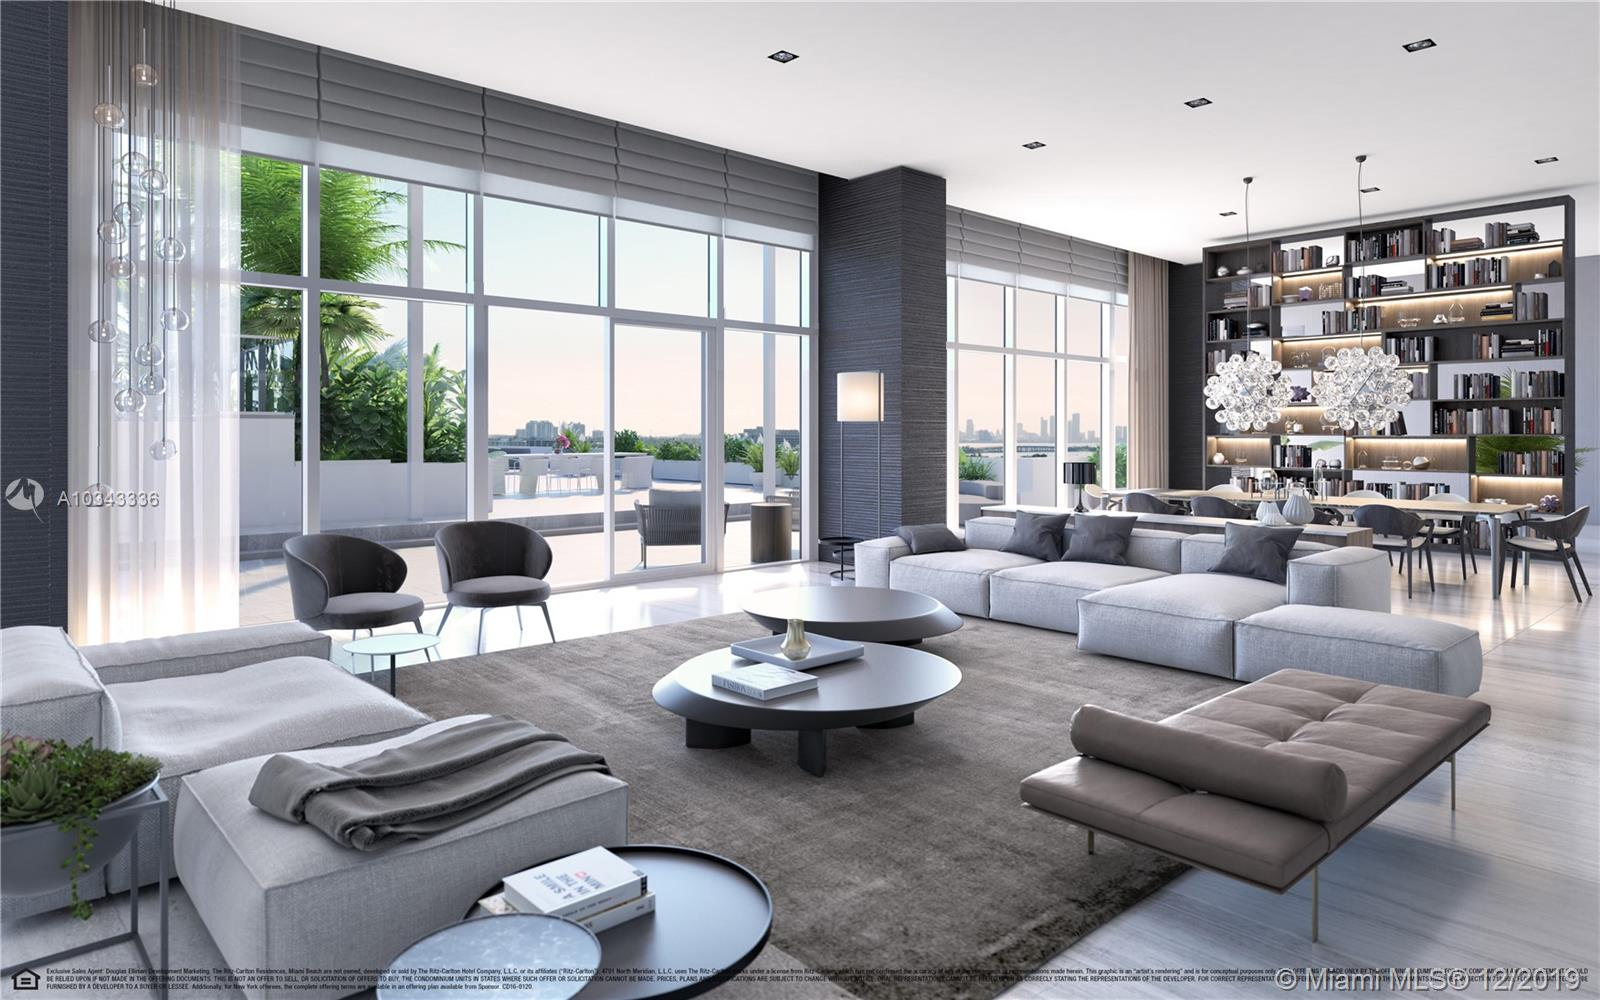 Unlike anything you have seen before, this is one of the five extravagant and surreal penthouses of The Ritz-Carlton Residences, Miami Beach. This two level residence overlooking Biscayne Bay and Downtown Miami, is perfect for entertaining, featuring immense outdoor living area with plunge pool and outdoor kitchen. Residence features include: private elevator and foyer, stone and wood flooring throughout, floor-to-ceiling windows, Boffi kitchens, Gaggenau appliances and Zucchetti plumbing. Schedule a private appointment of the first Model Residence Designed by Piero Lissoni today.